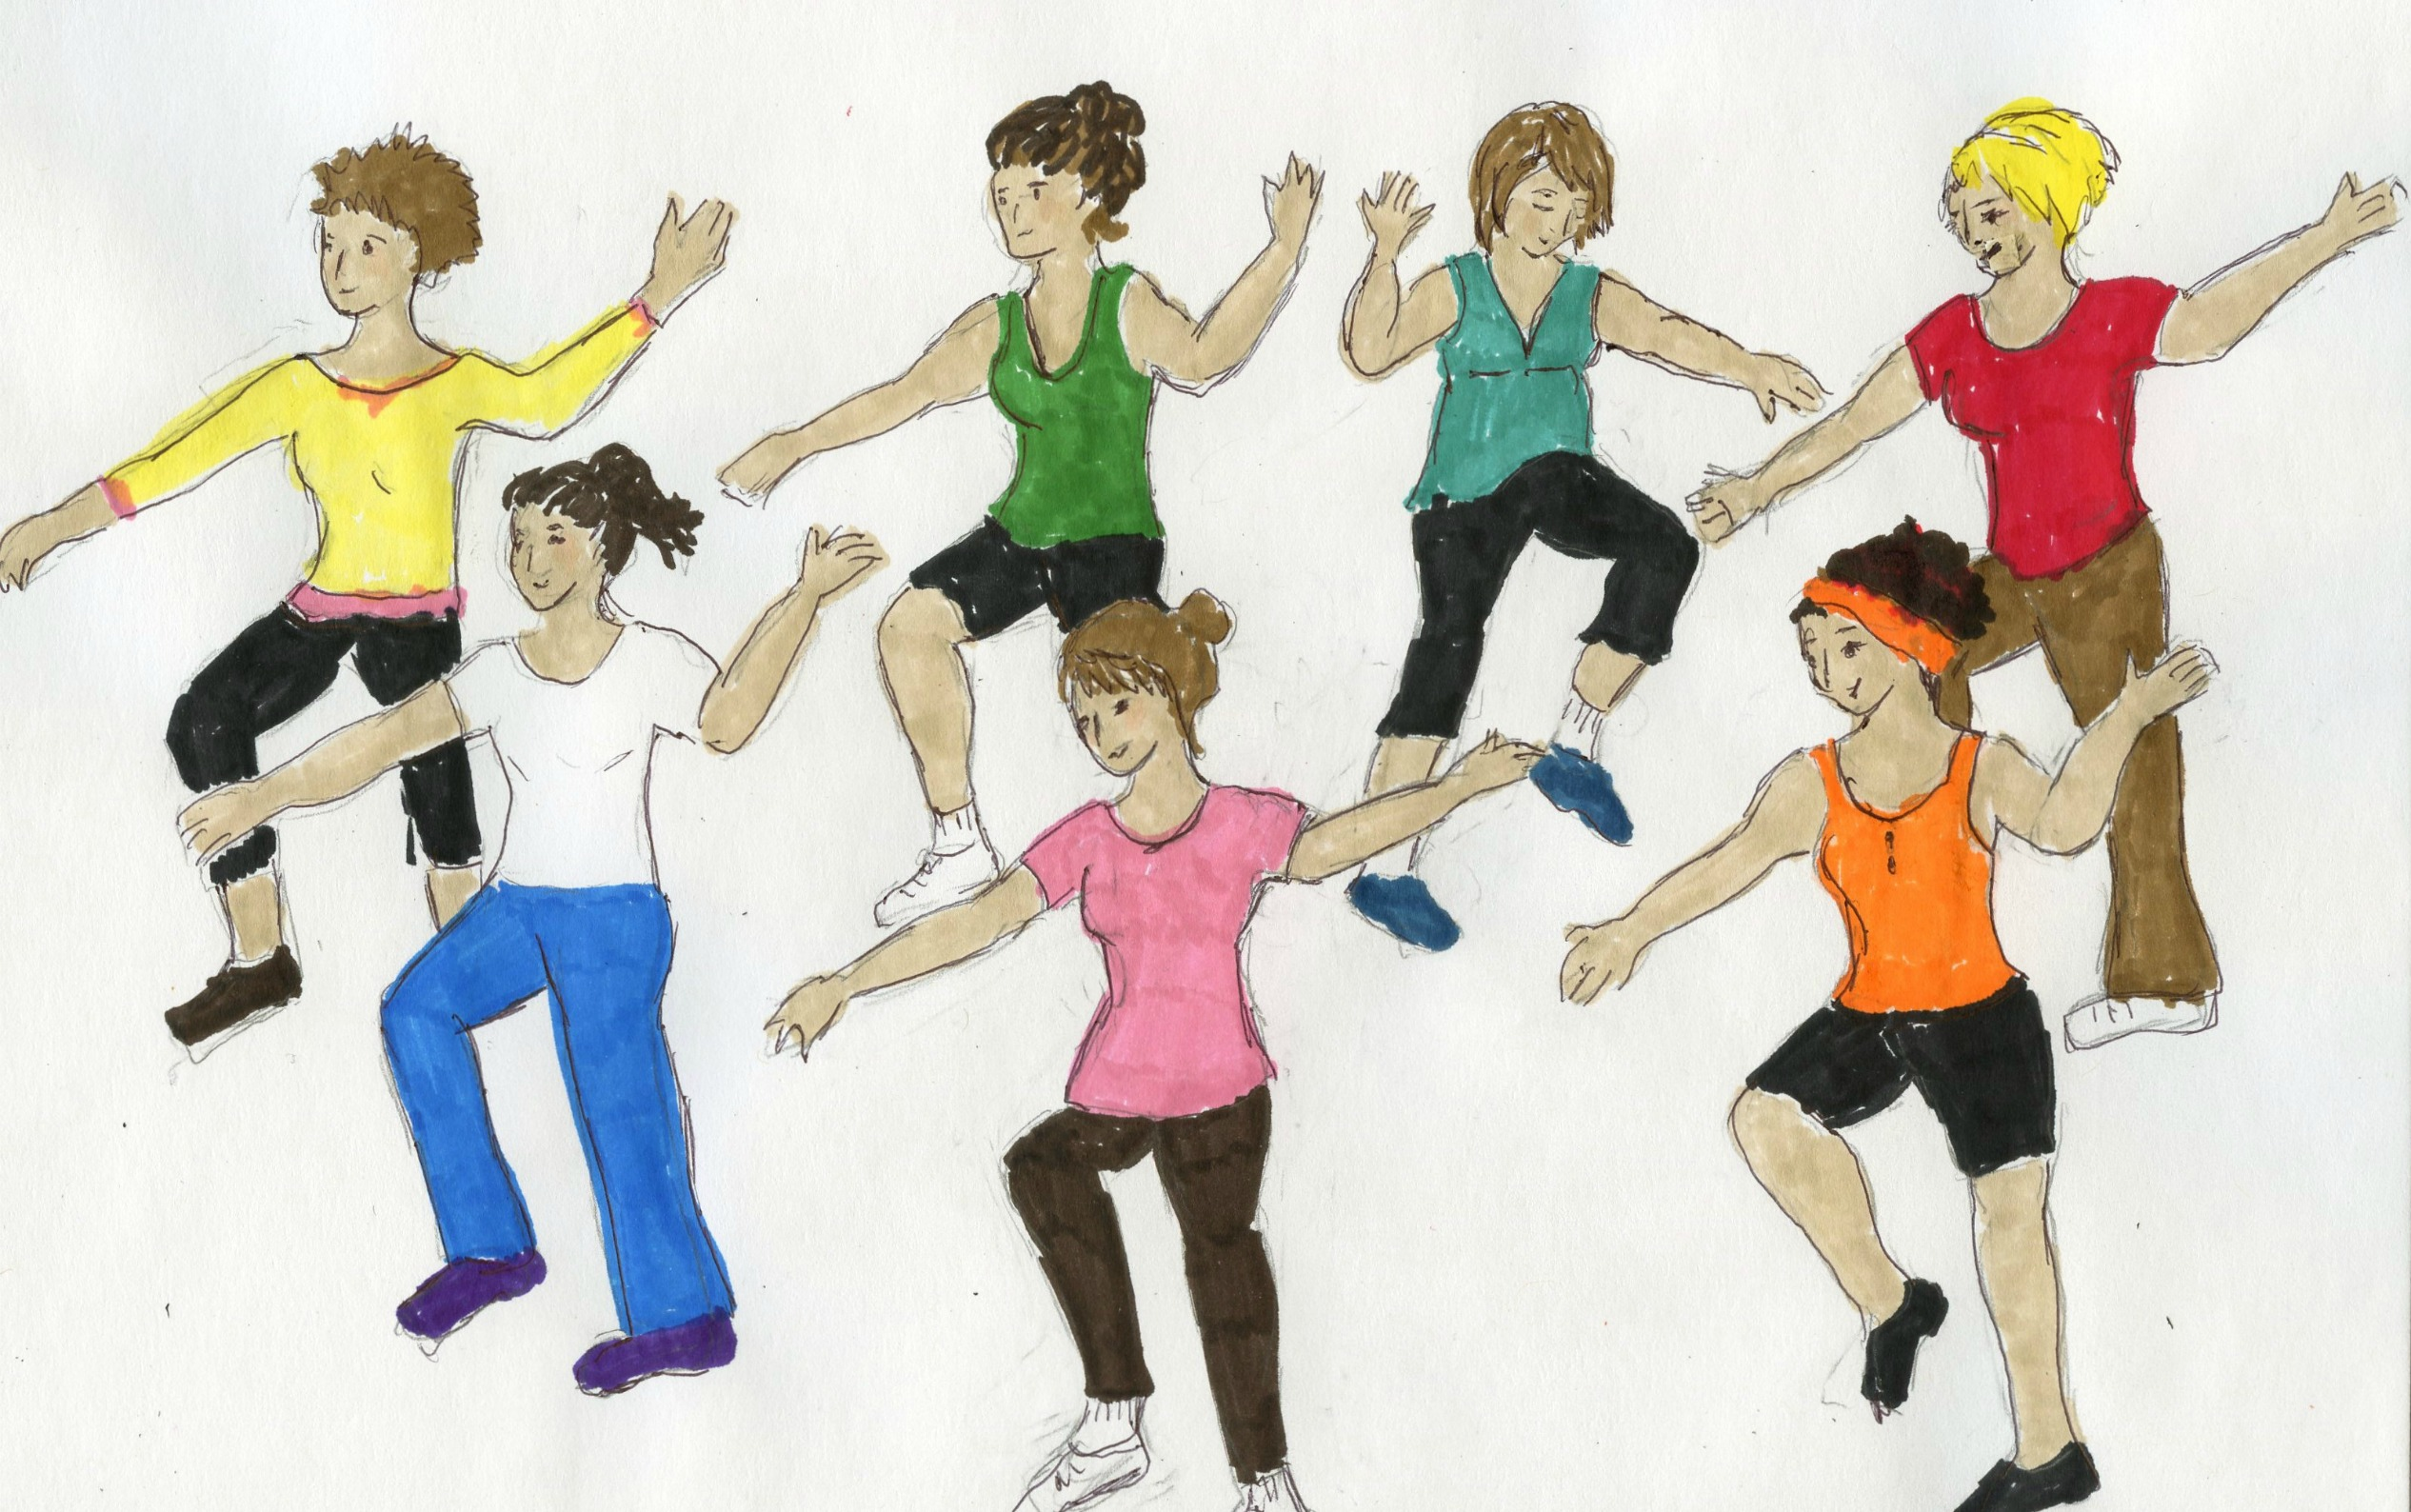 zumba clip art free - photo #30